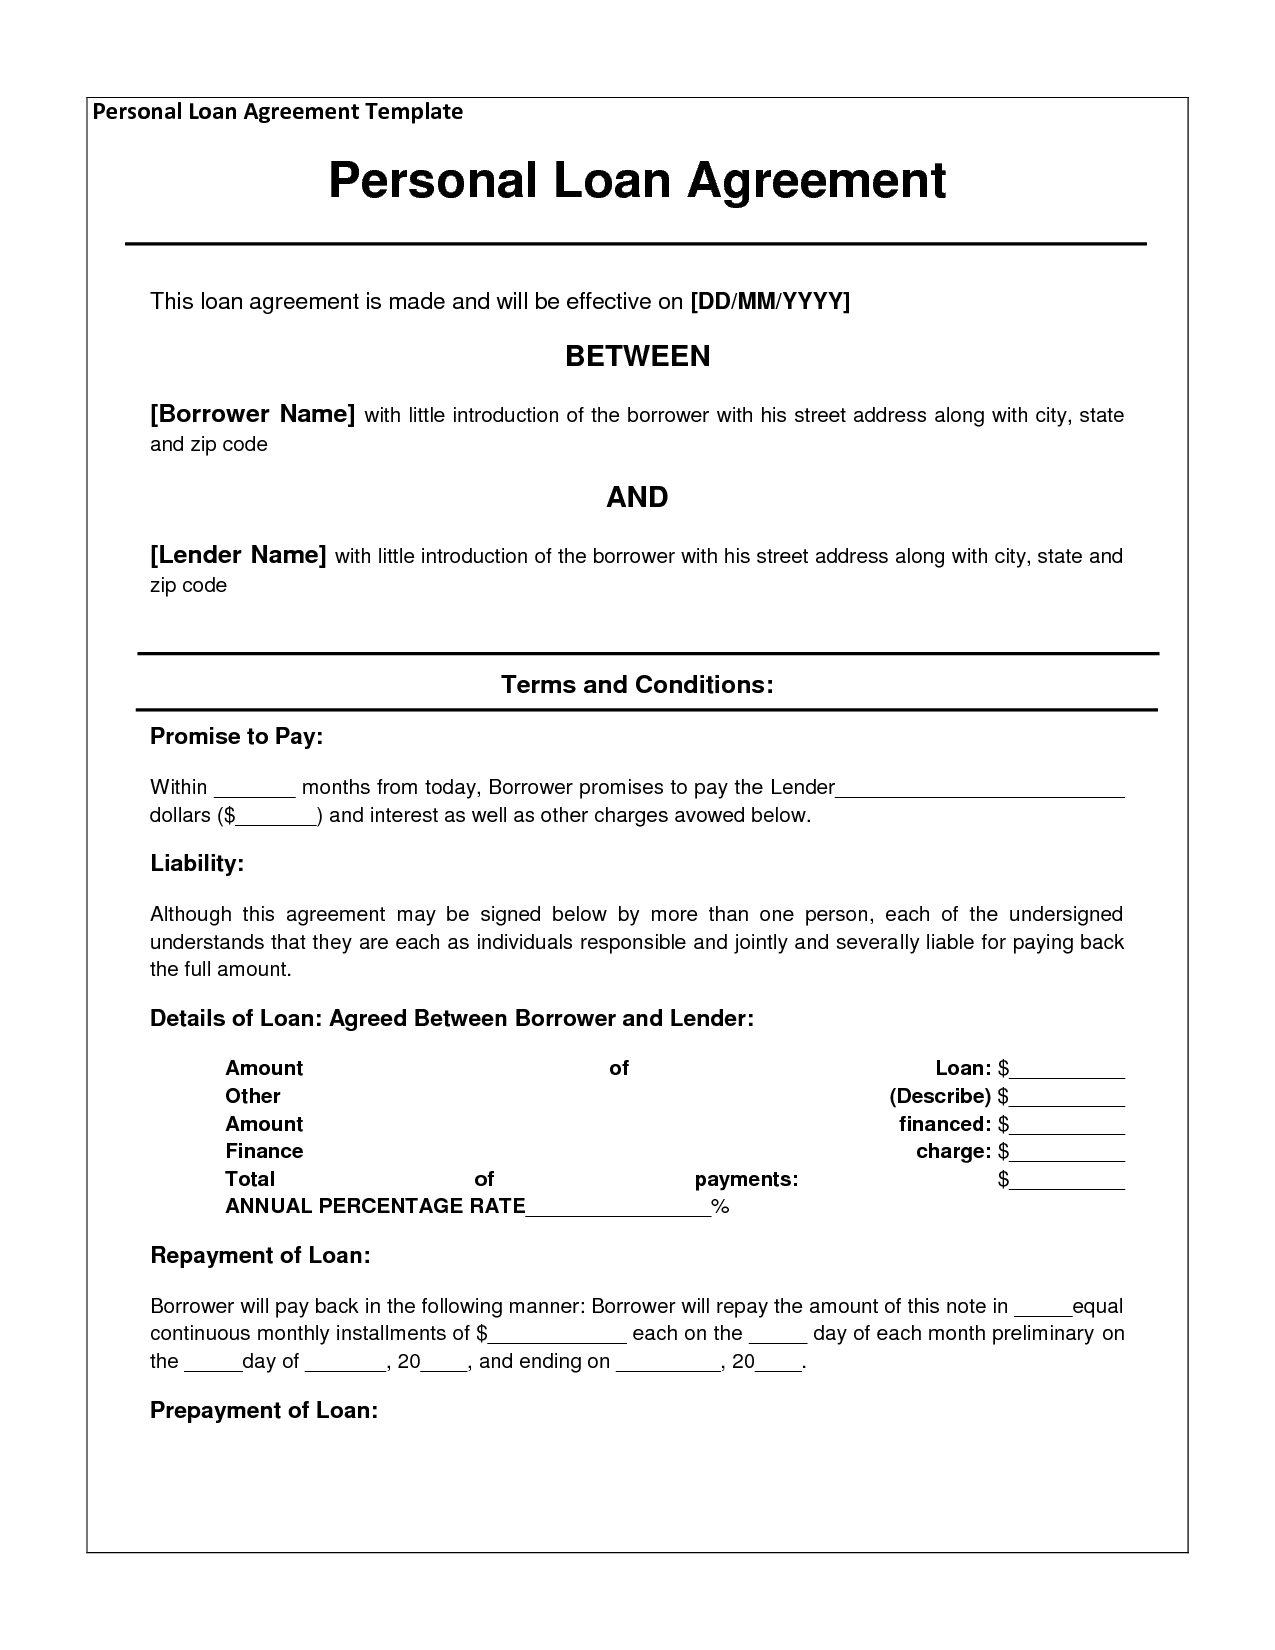 Free personal loan agreement form template 1000 approved in 2 free personal loan agreement form template 1000 approved in 2 private loan agreement template free platinumwayz